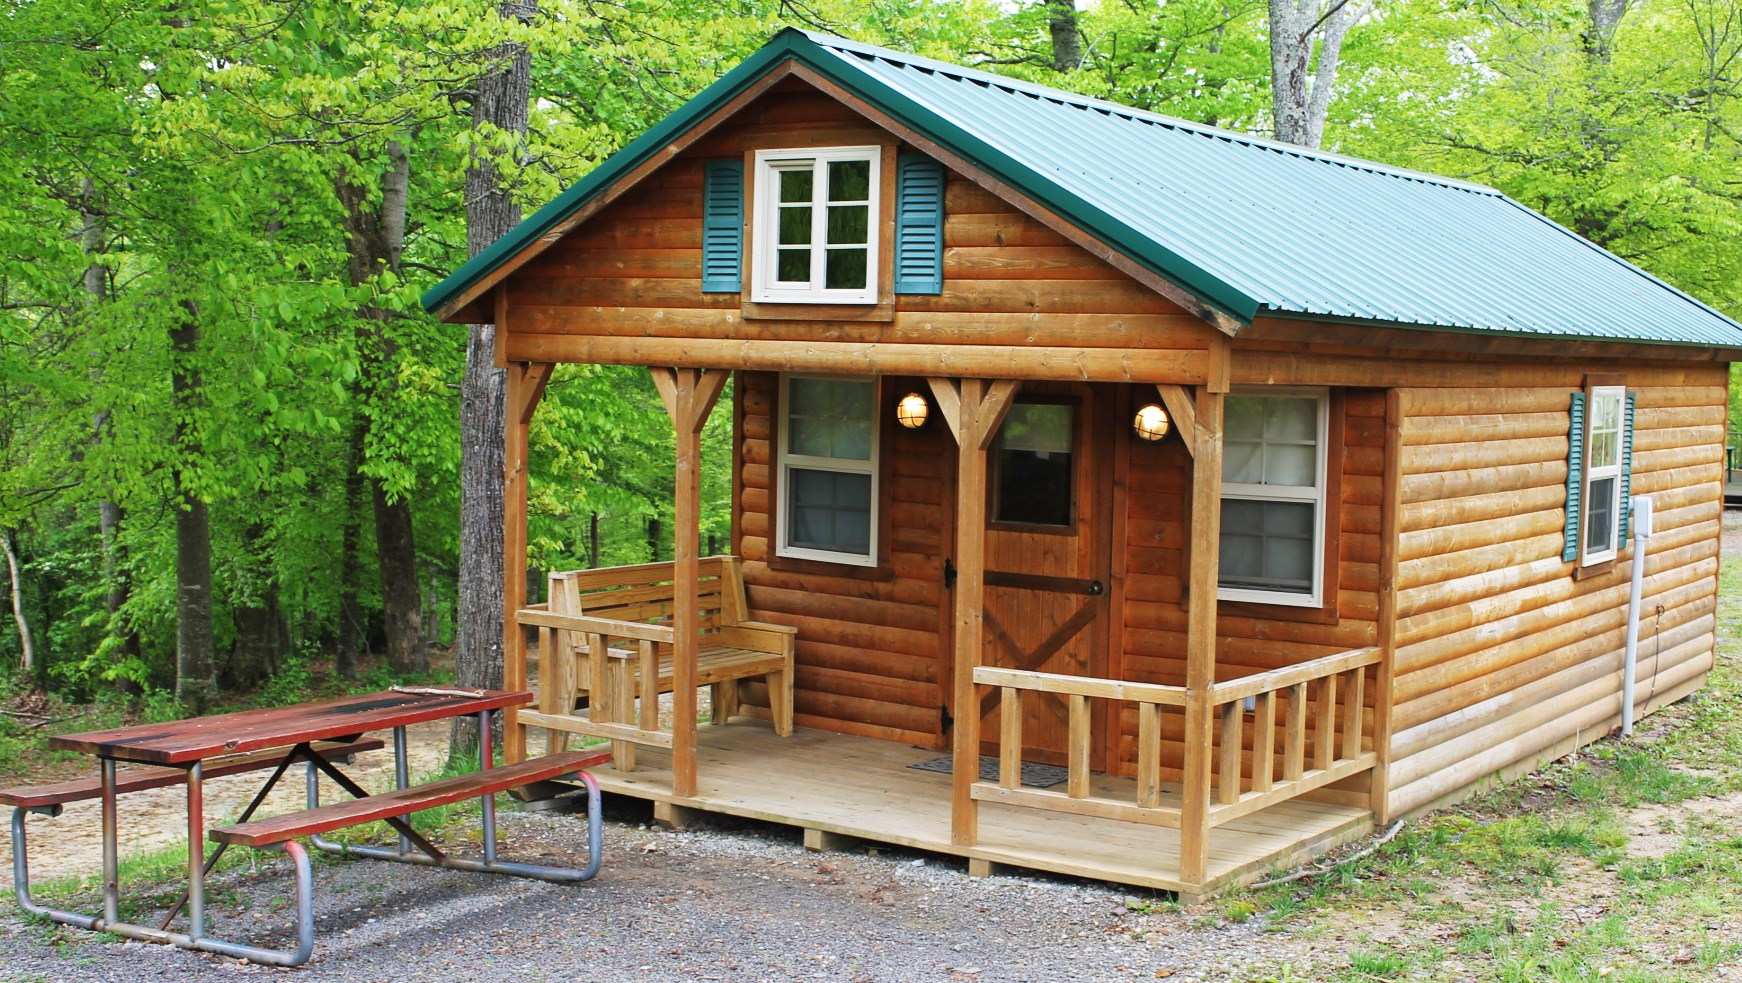 Indian hills resort cabin rentals cottages lake for Nearby campgrounds with cabins